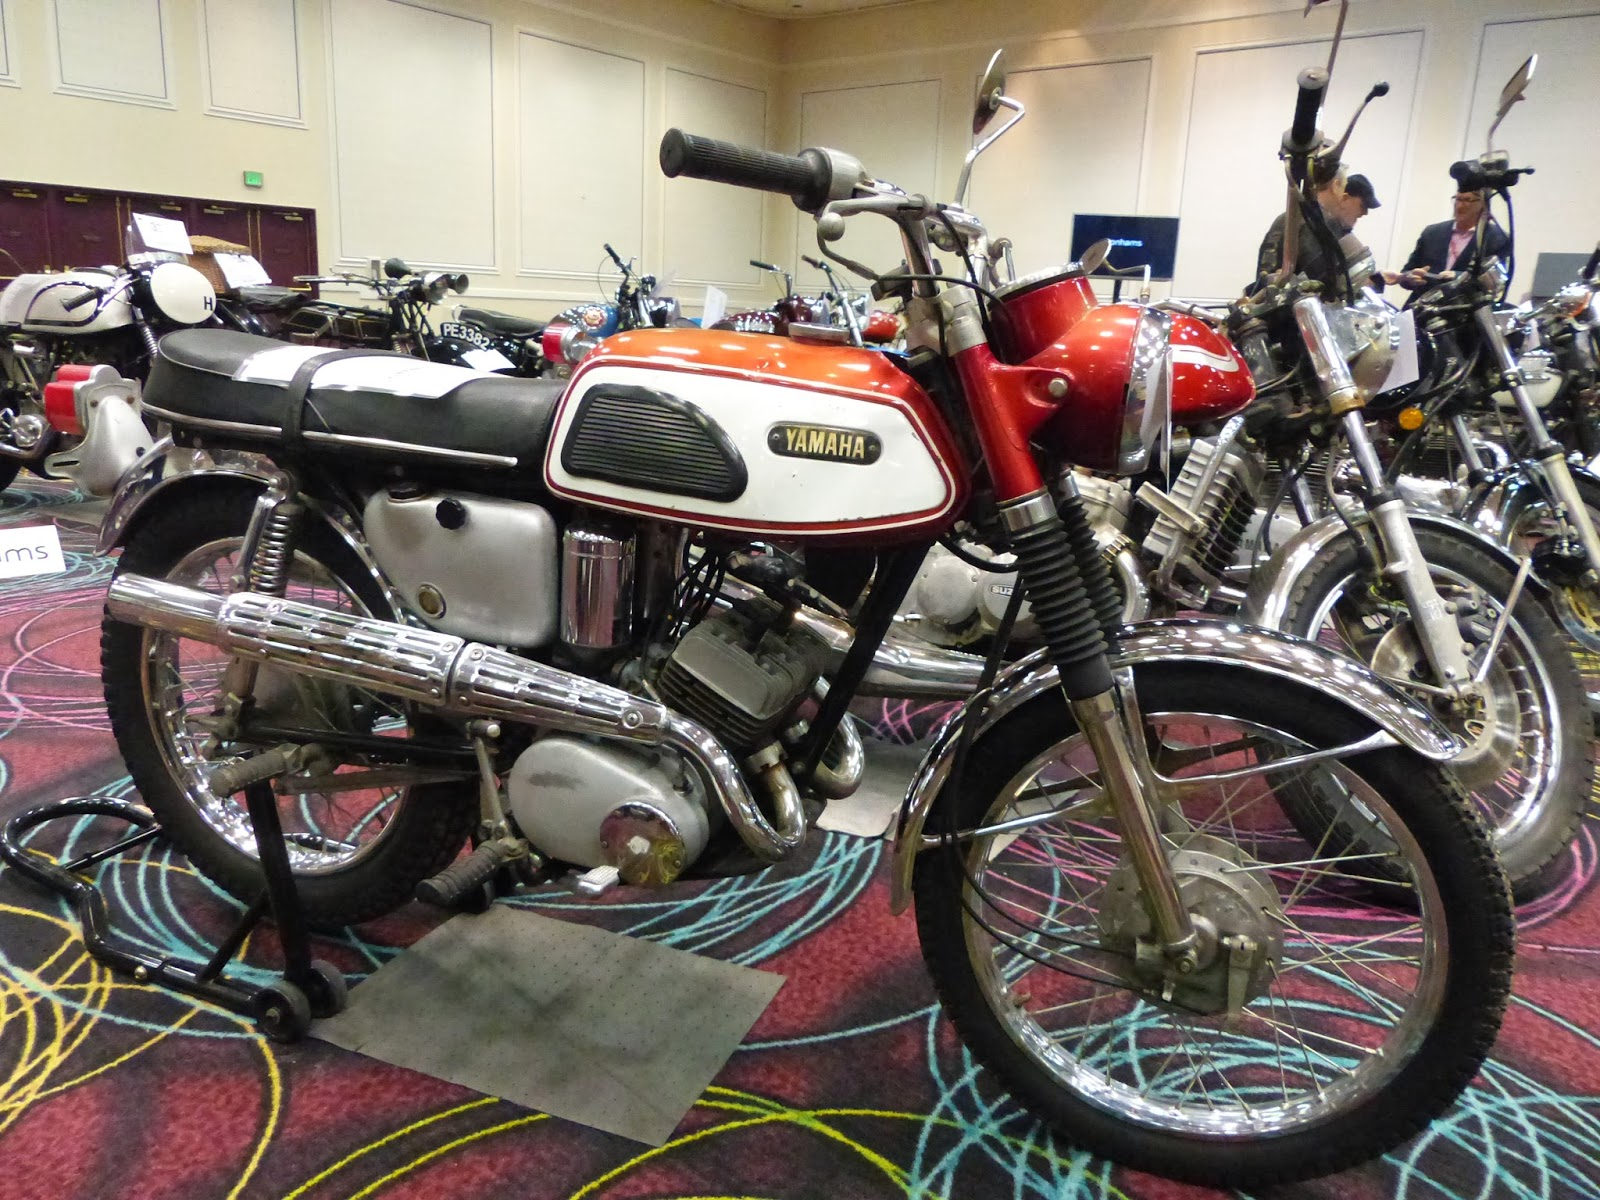 OldMotoDude: 1968 Yamaha AS-1 125 Sold For $2,760 At The